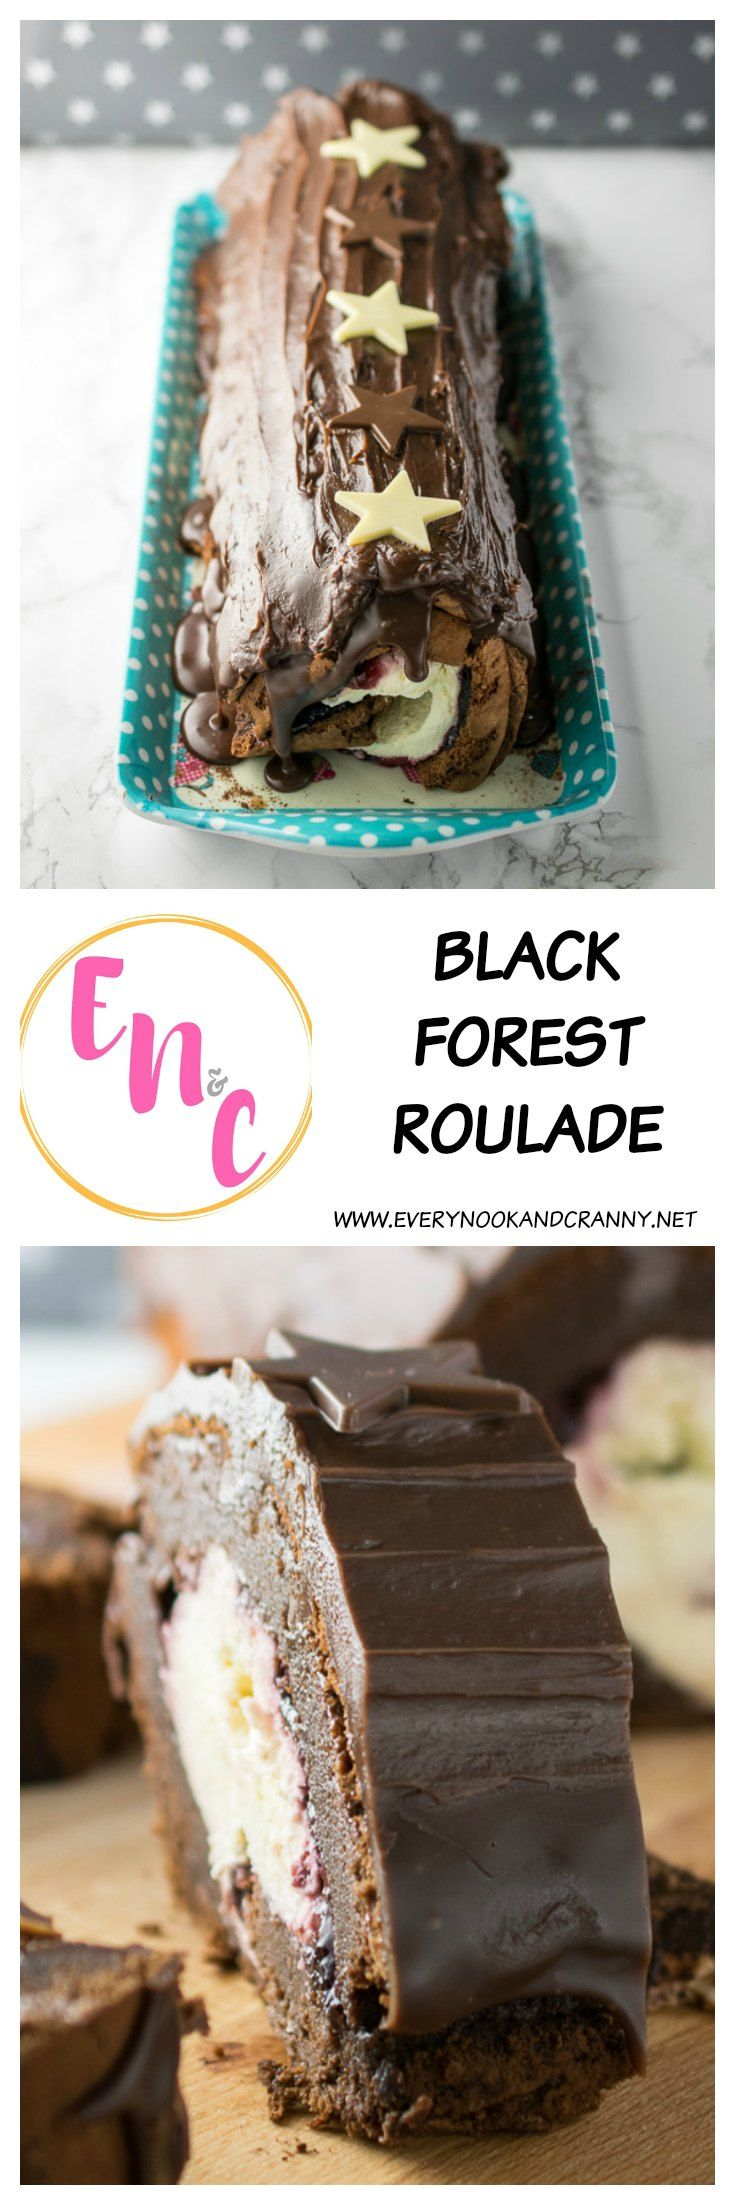 Black Forest Roulade is a chocolate sponge filled with Chambord sweetened whipped cream, black cherry conserve and finished with a balck cherry chocolate ganache